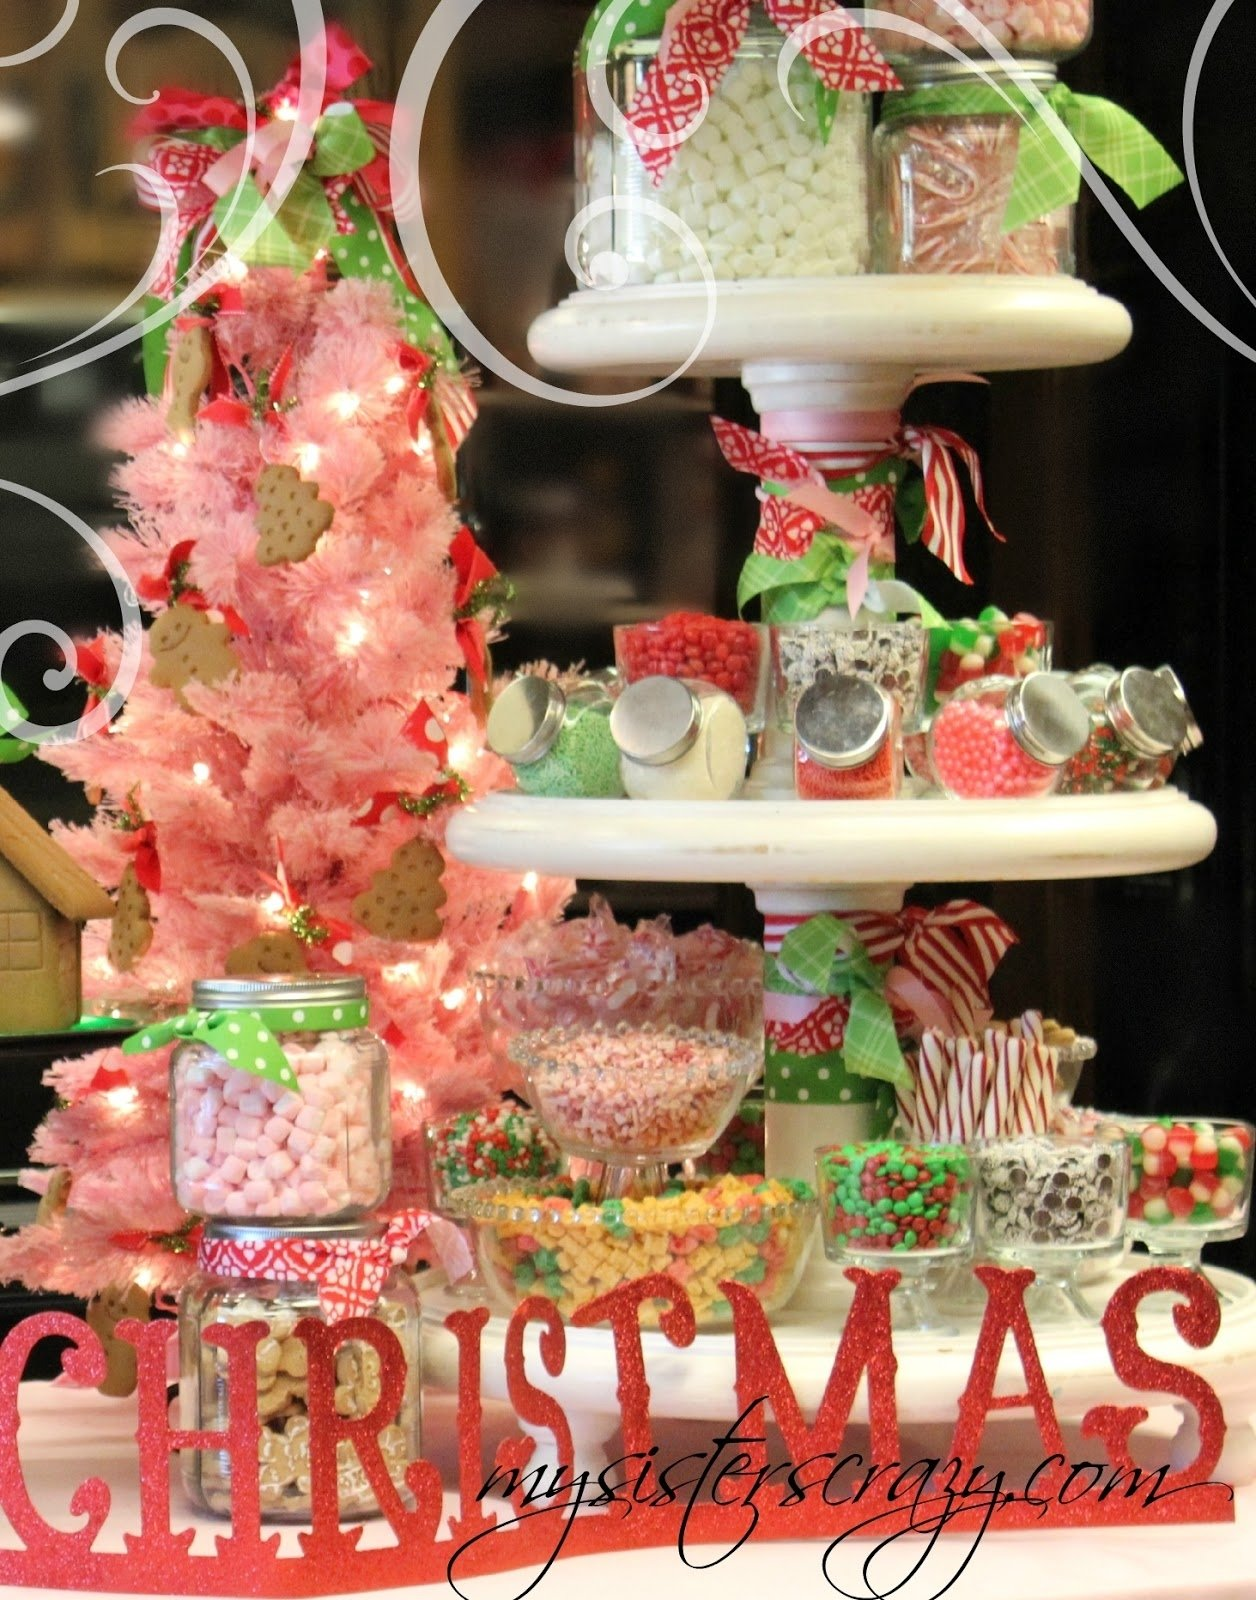 10 Fashionable Gingerbread House Decorating Party Ideas my sisters crazy gingerbread house and cookie decorating party 2020